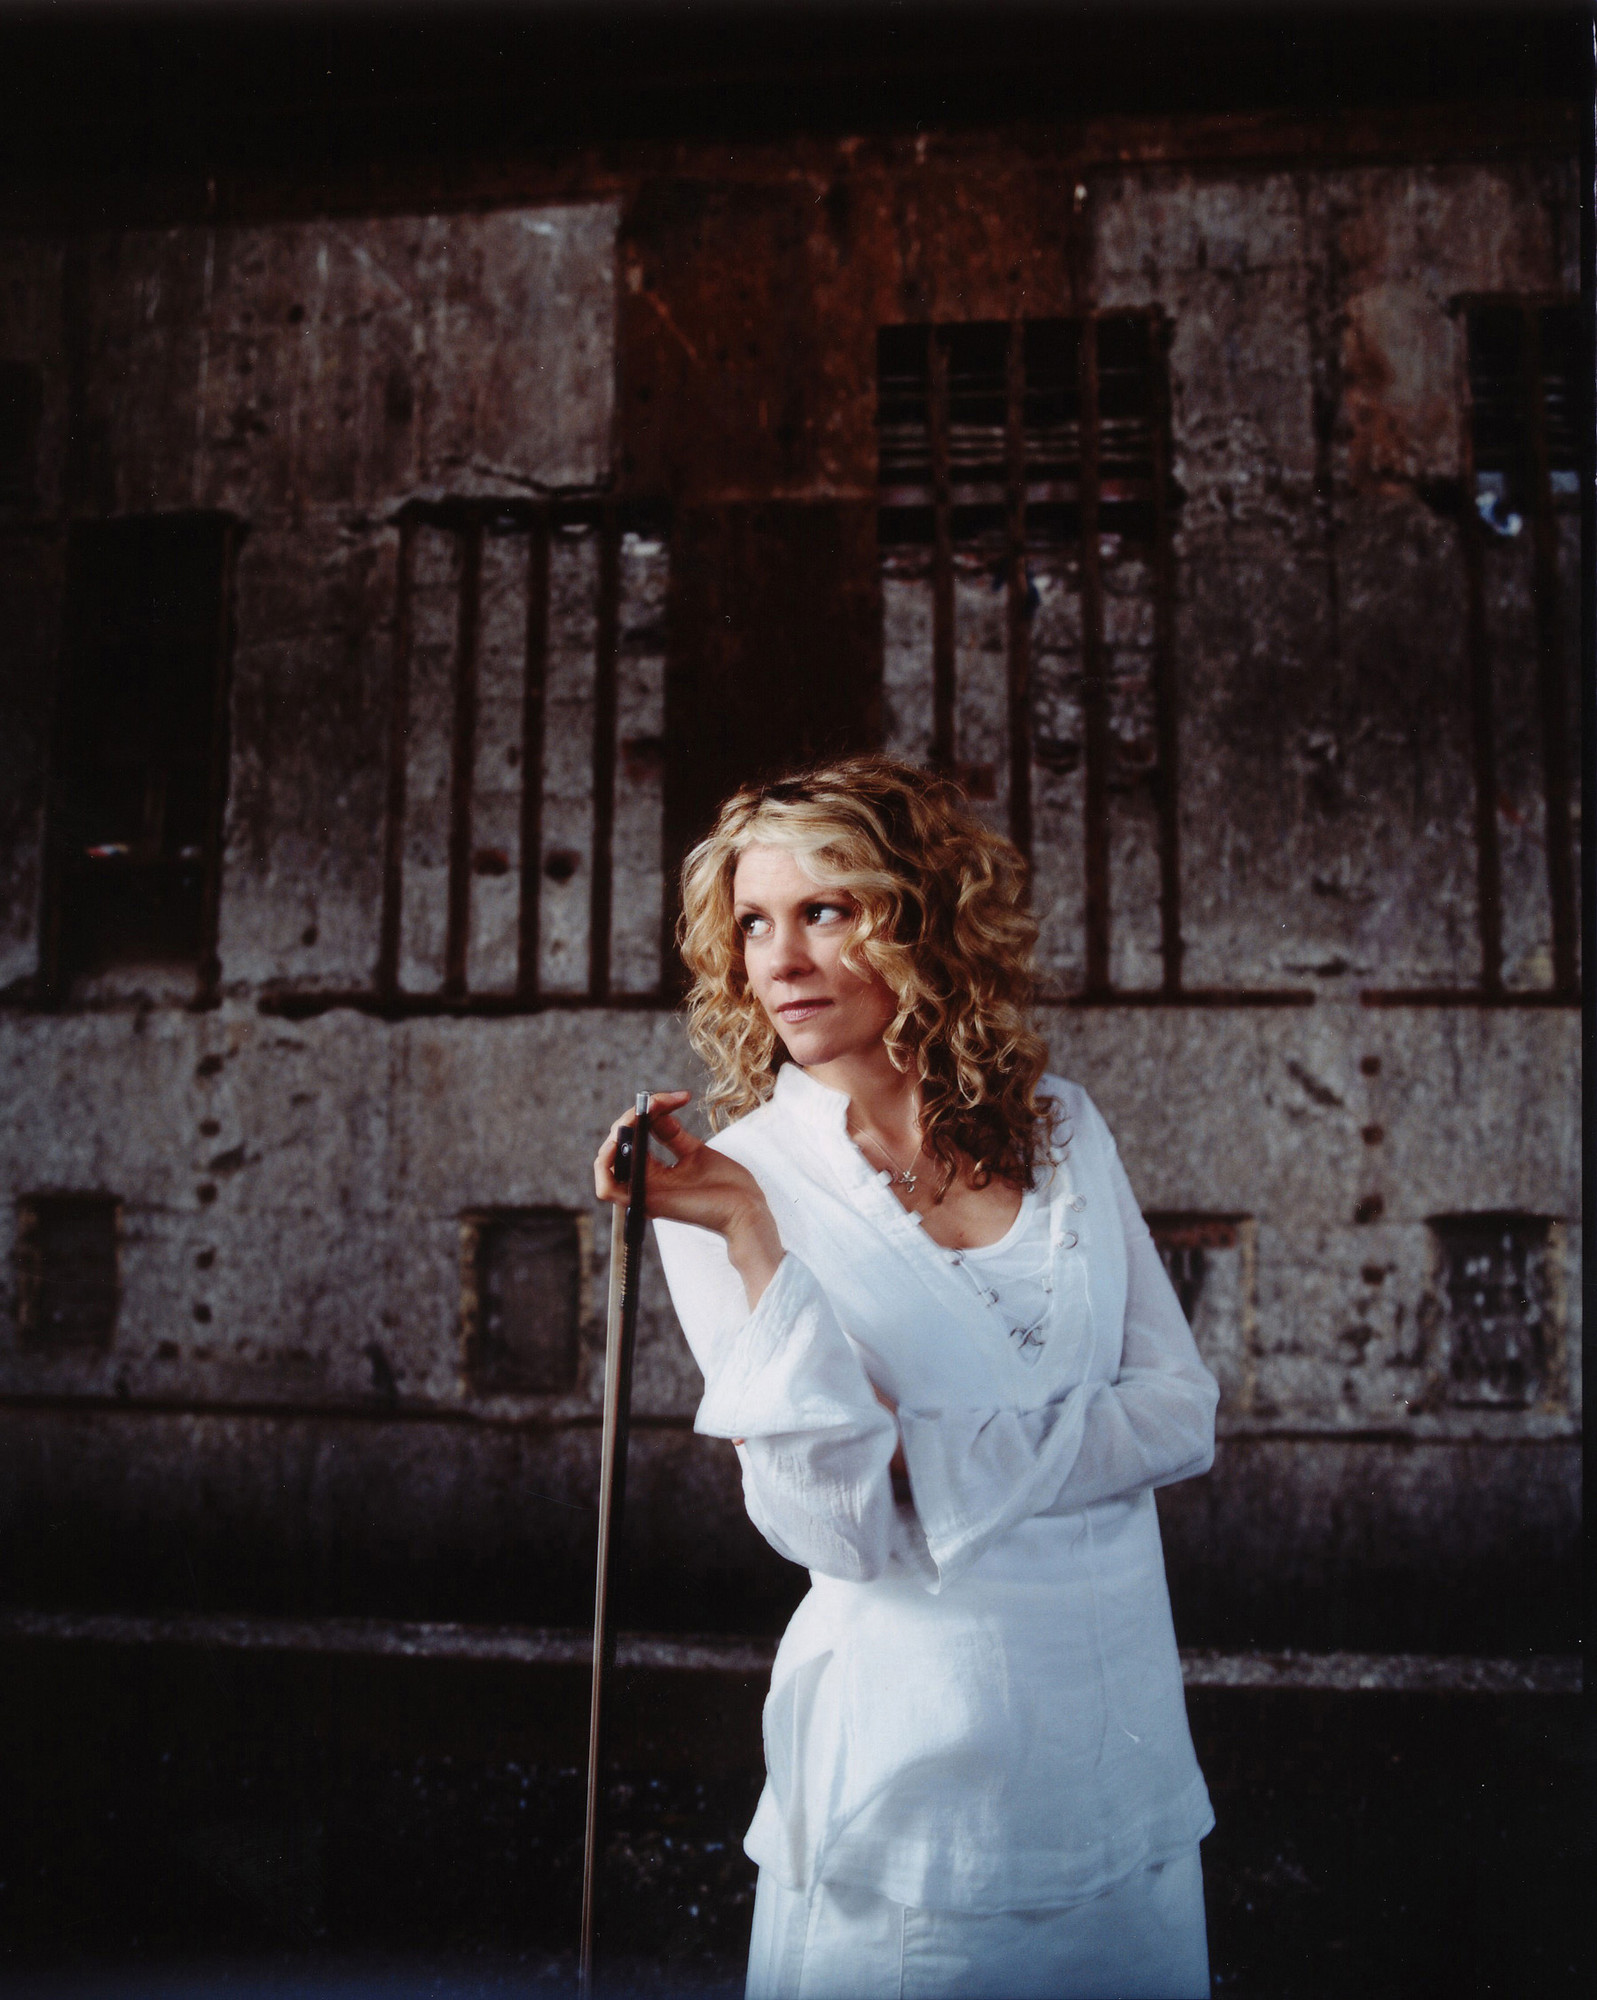 Natalie MacMaster performs at Landmark on Main Street on Saturday.